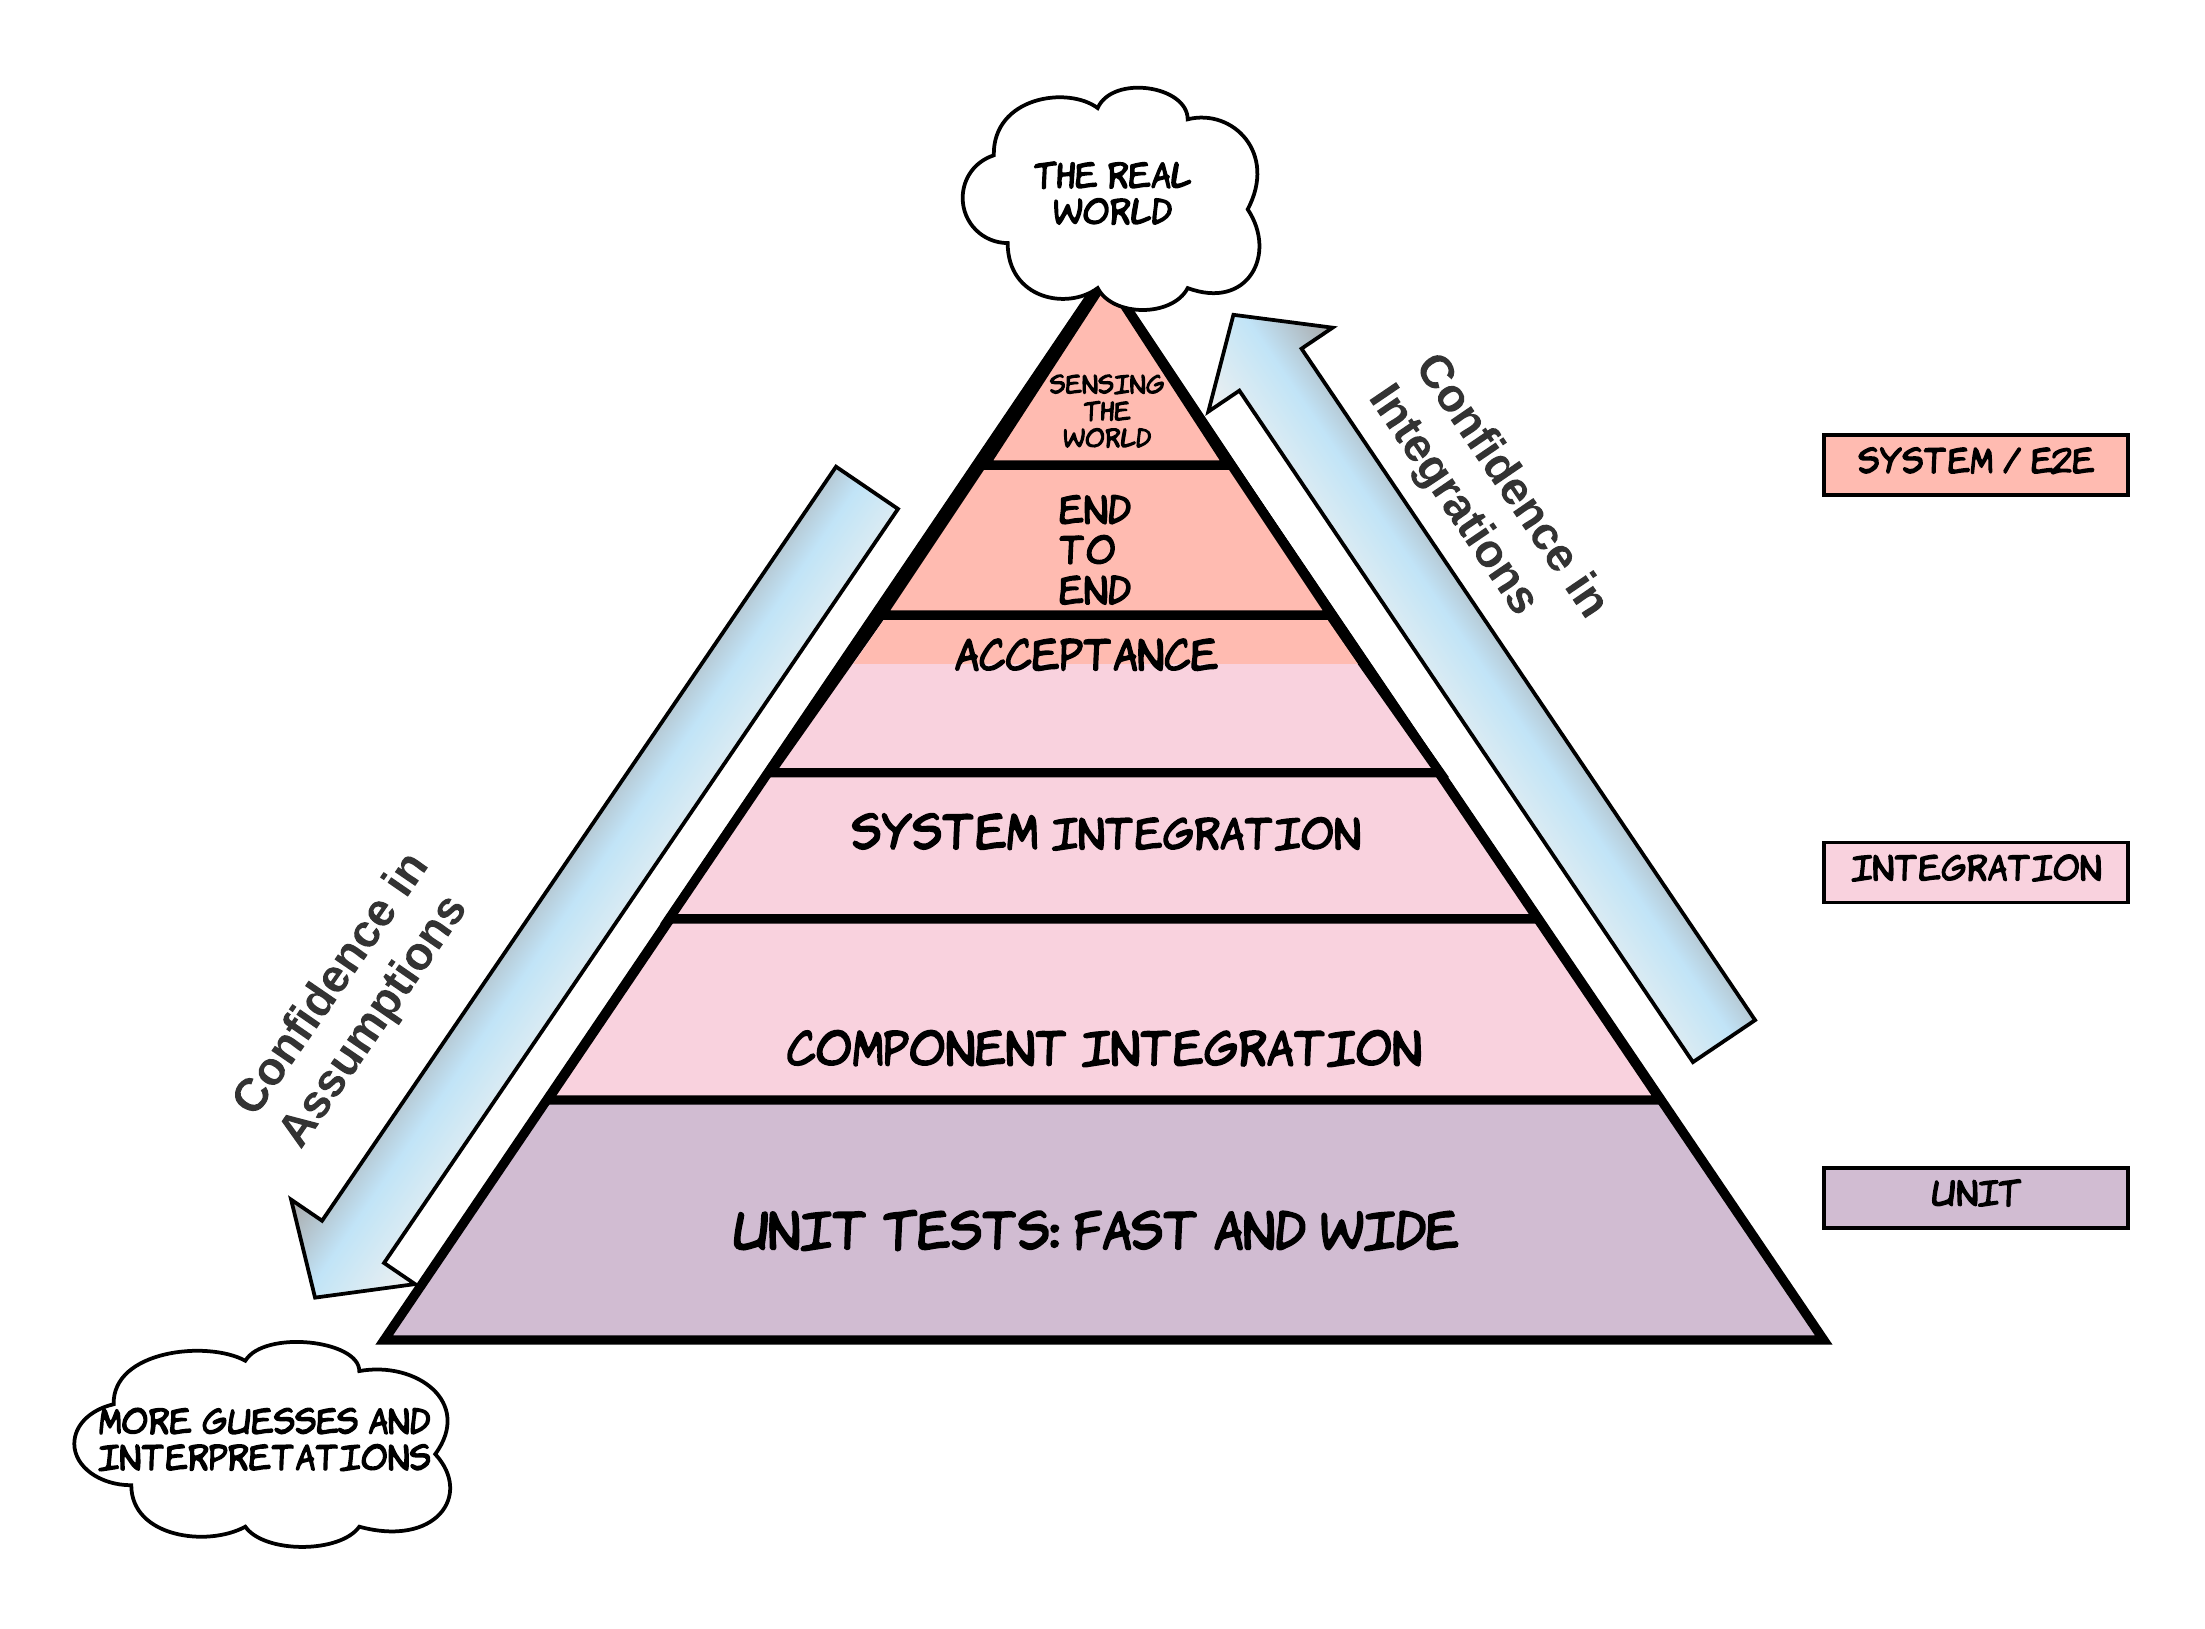 Diagram of the Full Testing Pyramid